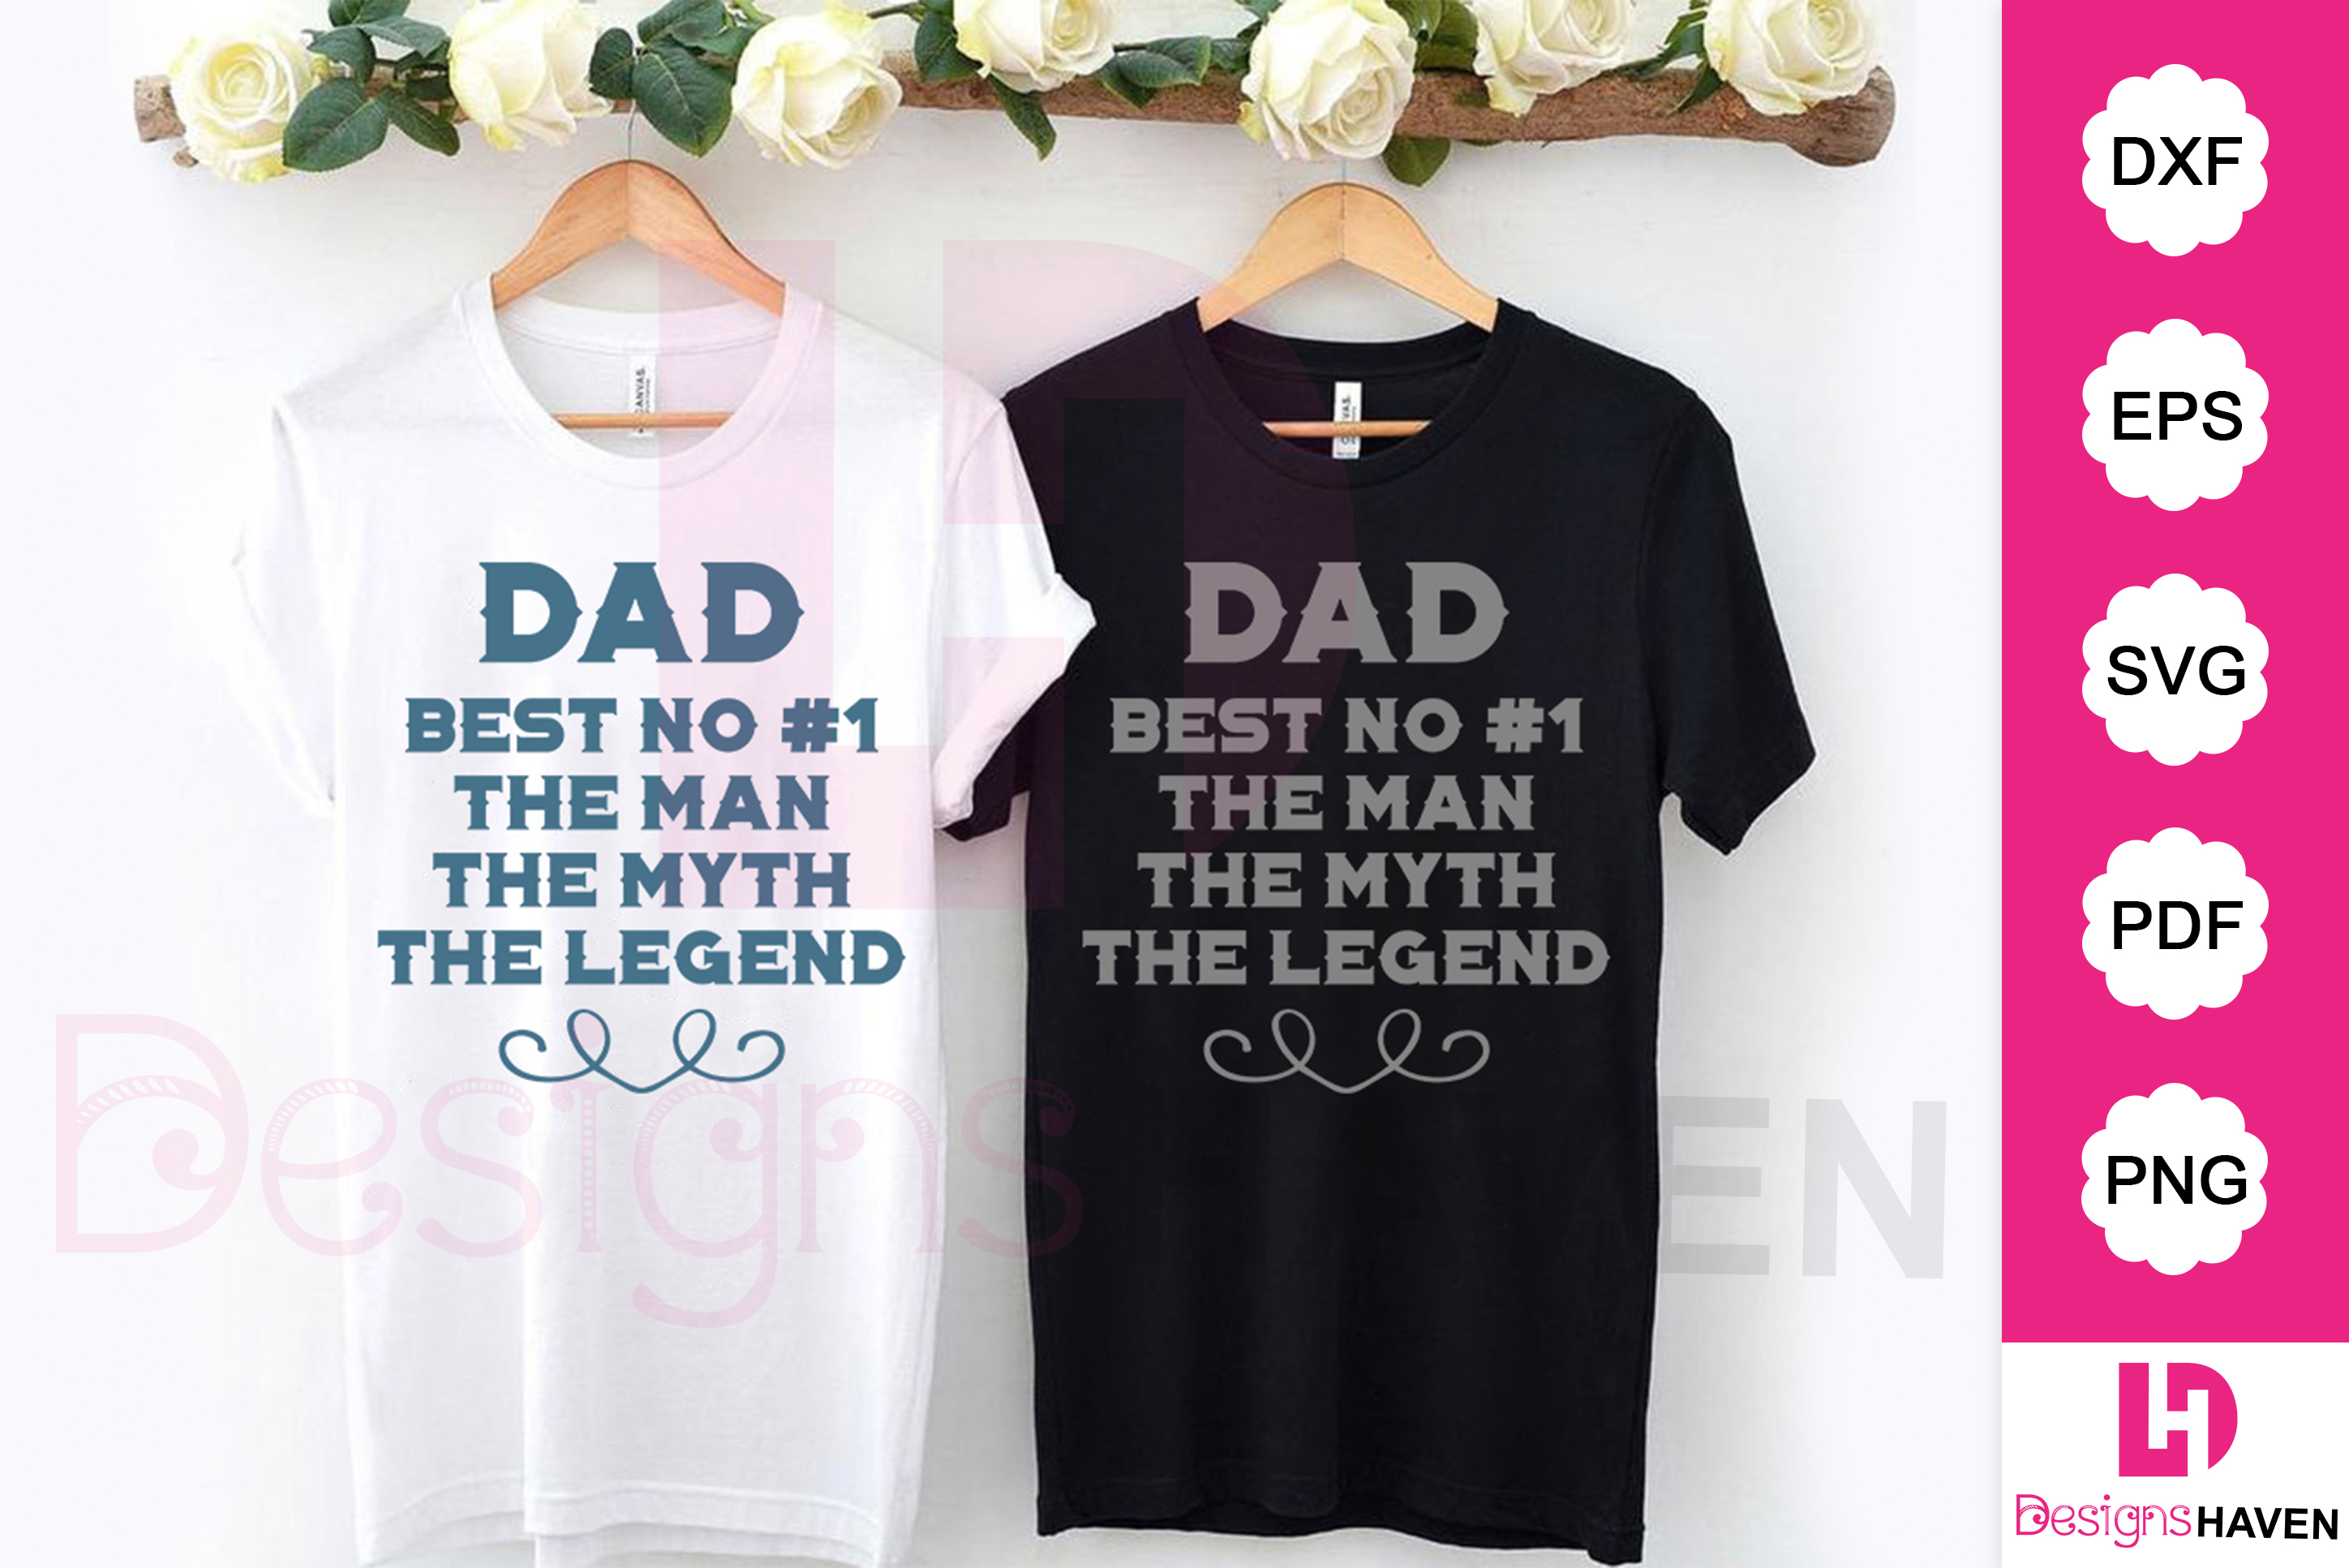 Download Free Dad The Man The Myth The Legend Graphic By Designshavenllc for Cricut Explore, Silhouette and other cutting machines.